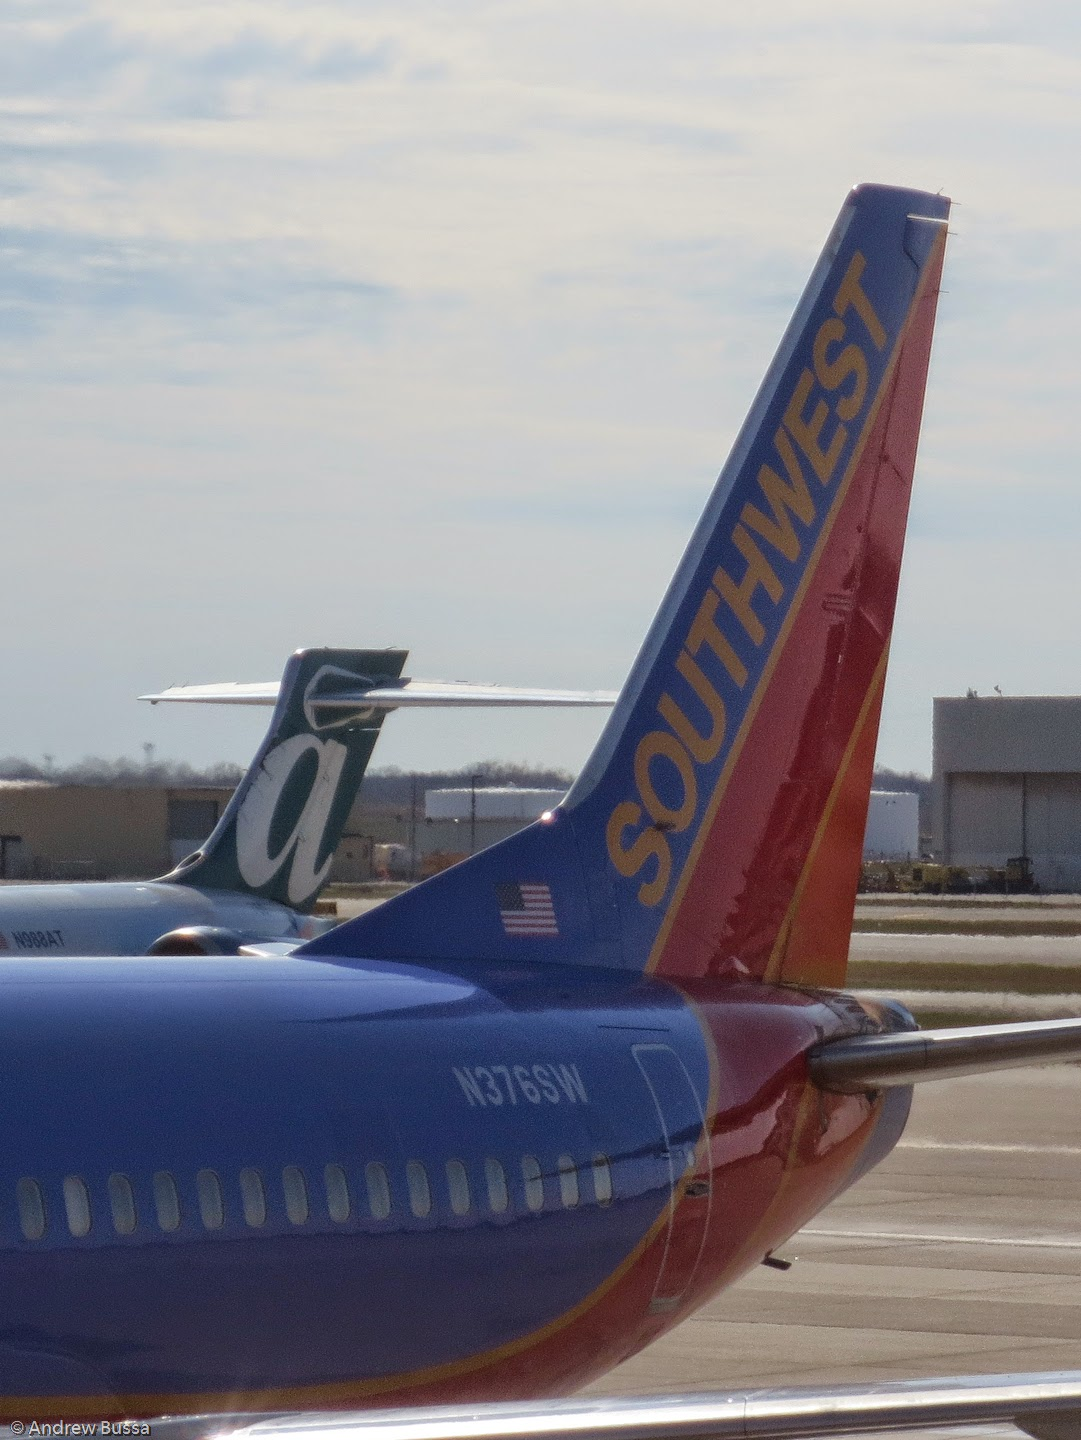 week 3 case southwest airtran merger Now southwest has converted many of airtran's flights to nonstop routes to major cities such as houston, denver, and los angeles in an attempt to steal atlanta-based business travelers from delta.